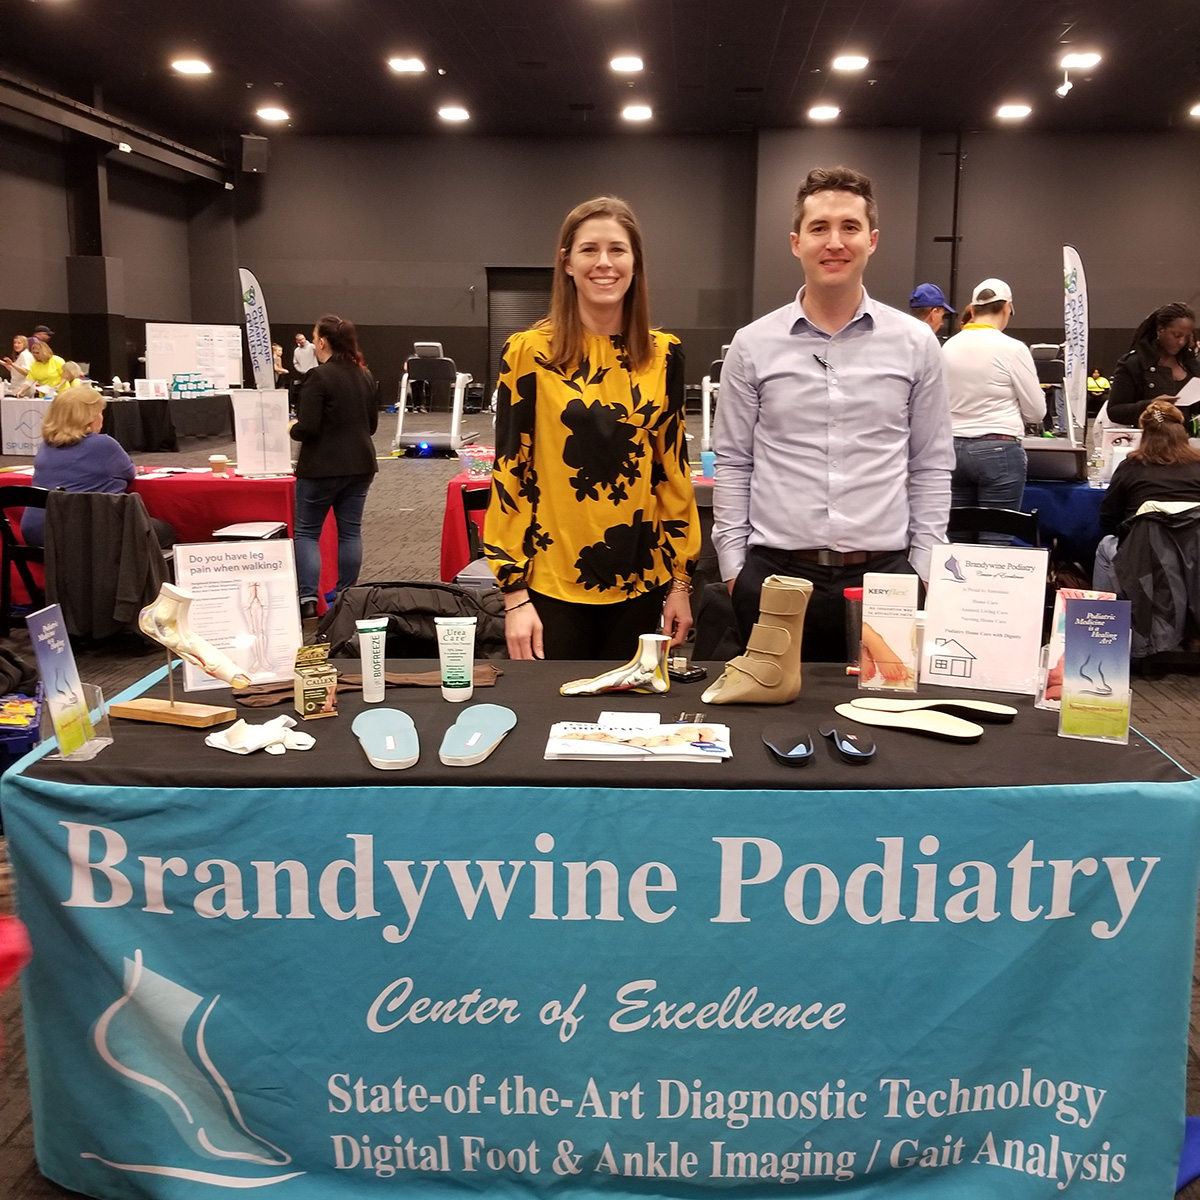 Brandywine Podiatry 20190105_123322.jpg